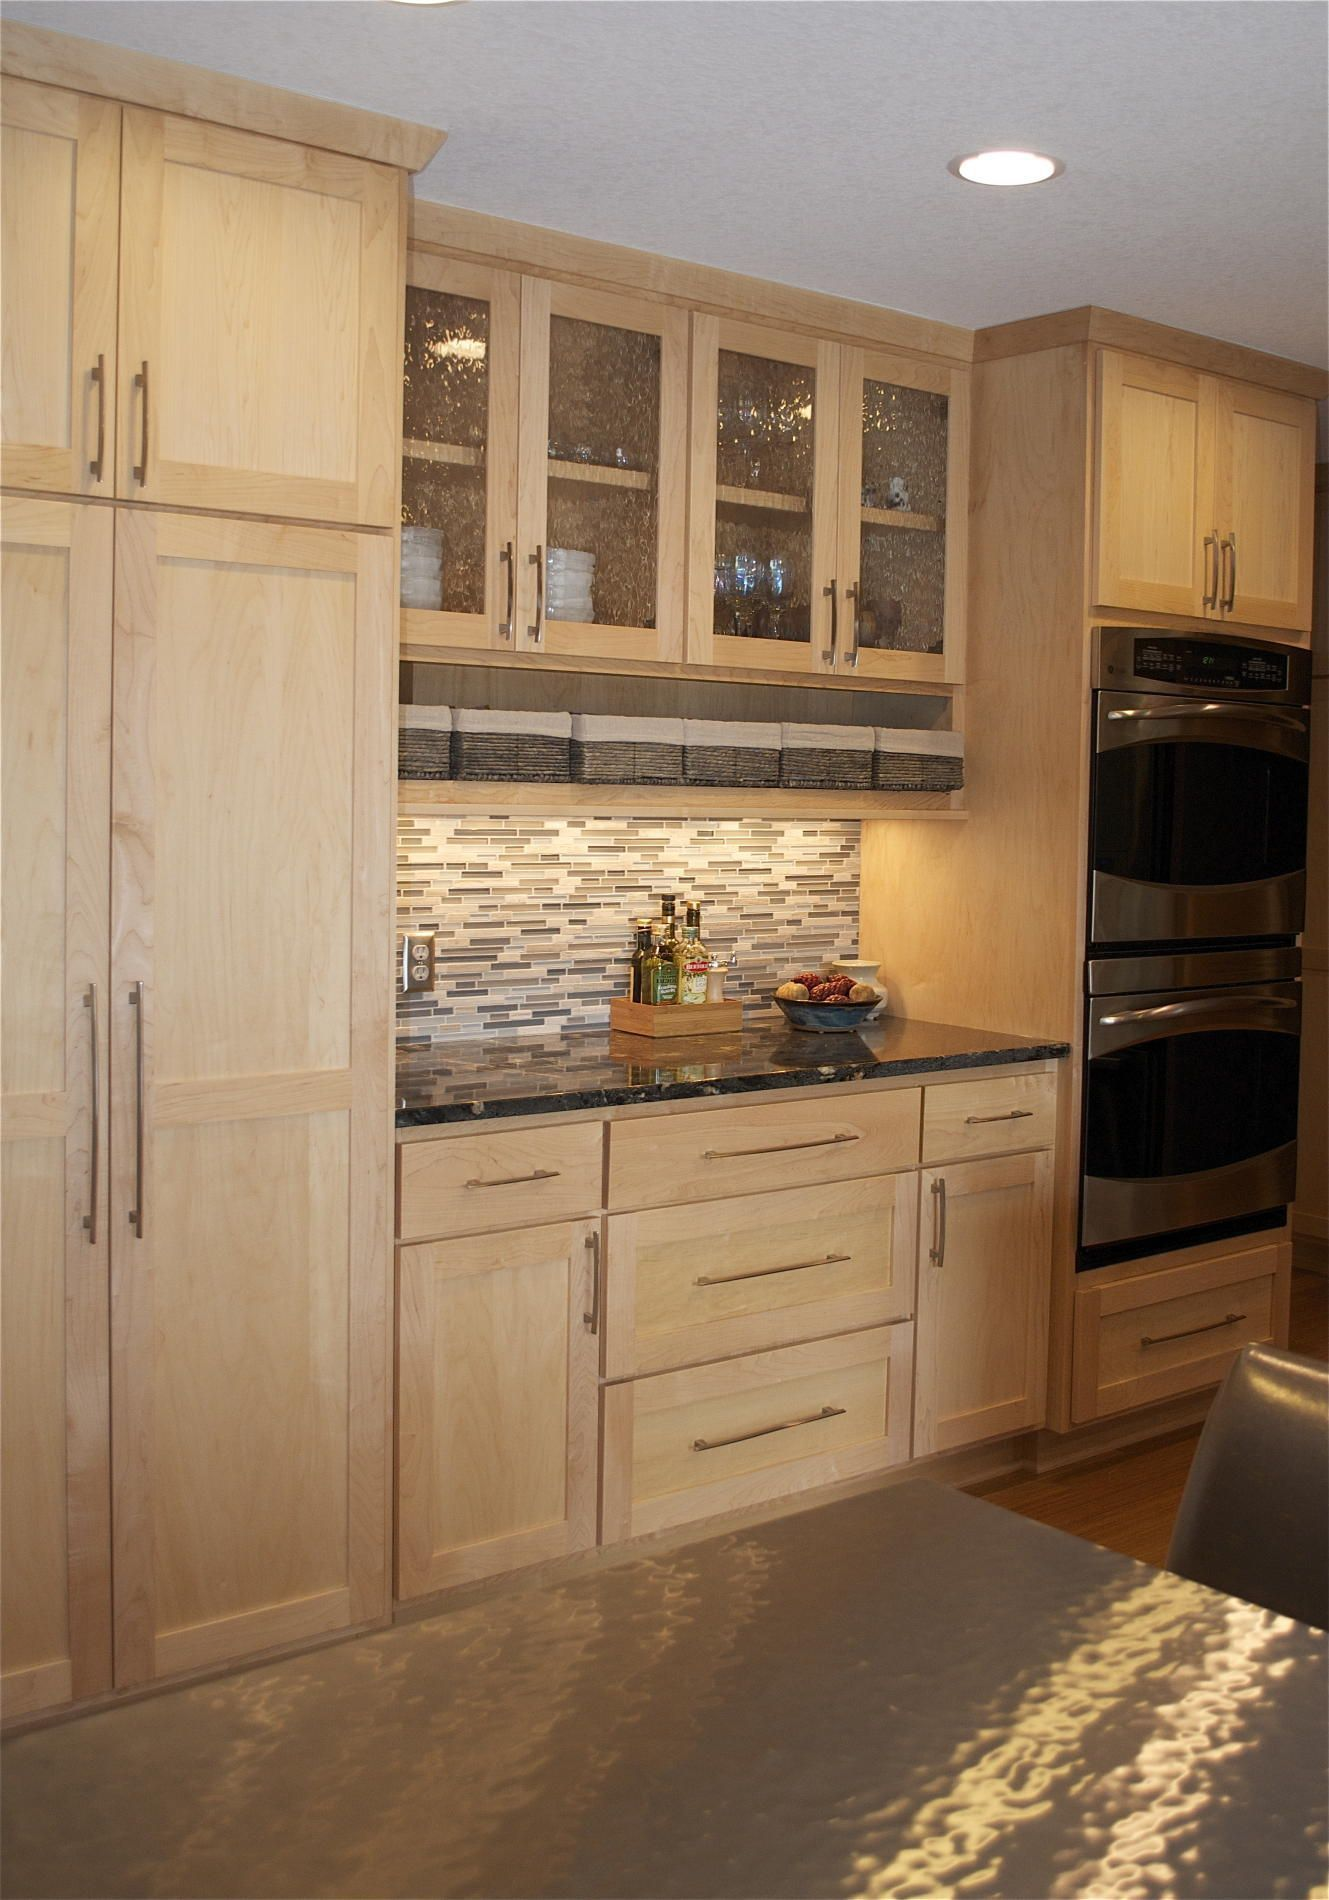 Refinishing Maple Cabinet Doors Onvacations Wallpaper Kitchencabinetsdesignimages Wooden Kitchen Cabinets Maple Kitchen Cabinets Best Kitchen Cabinets